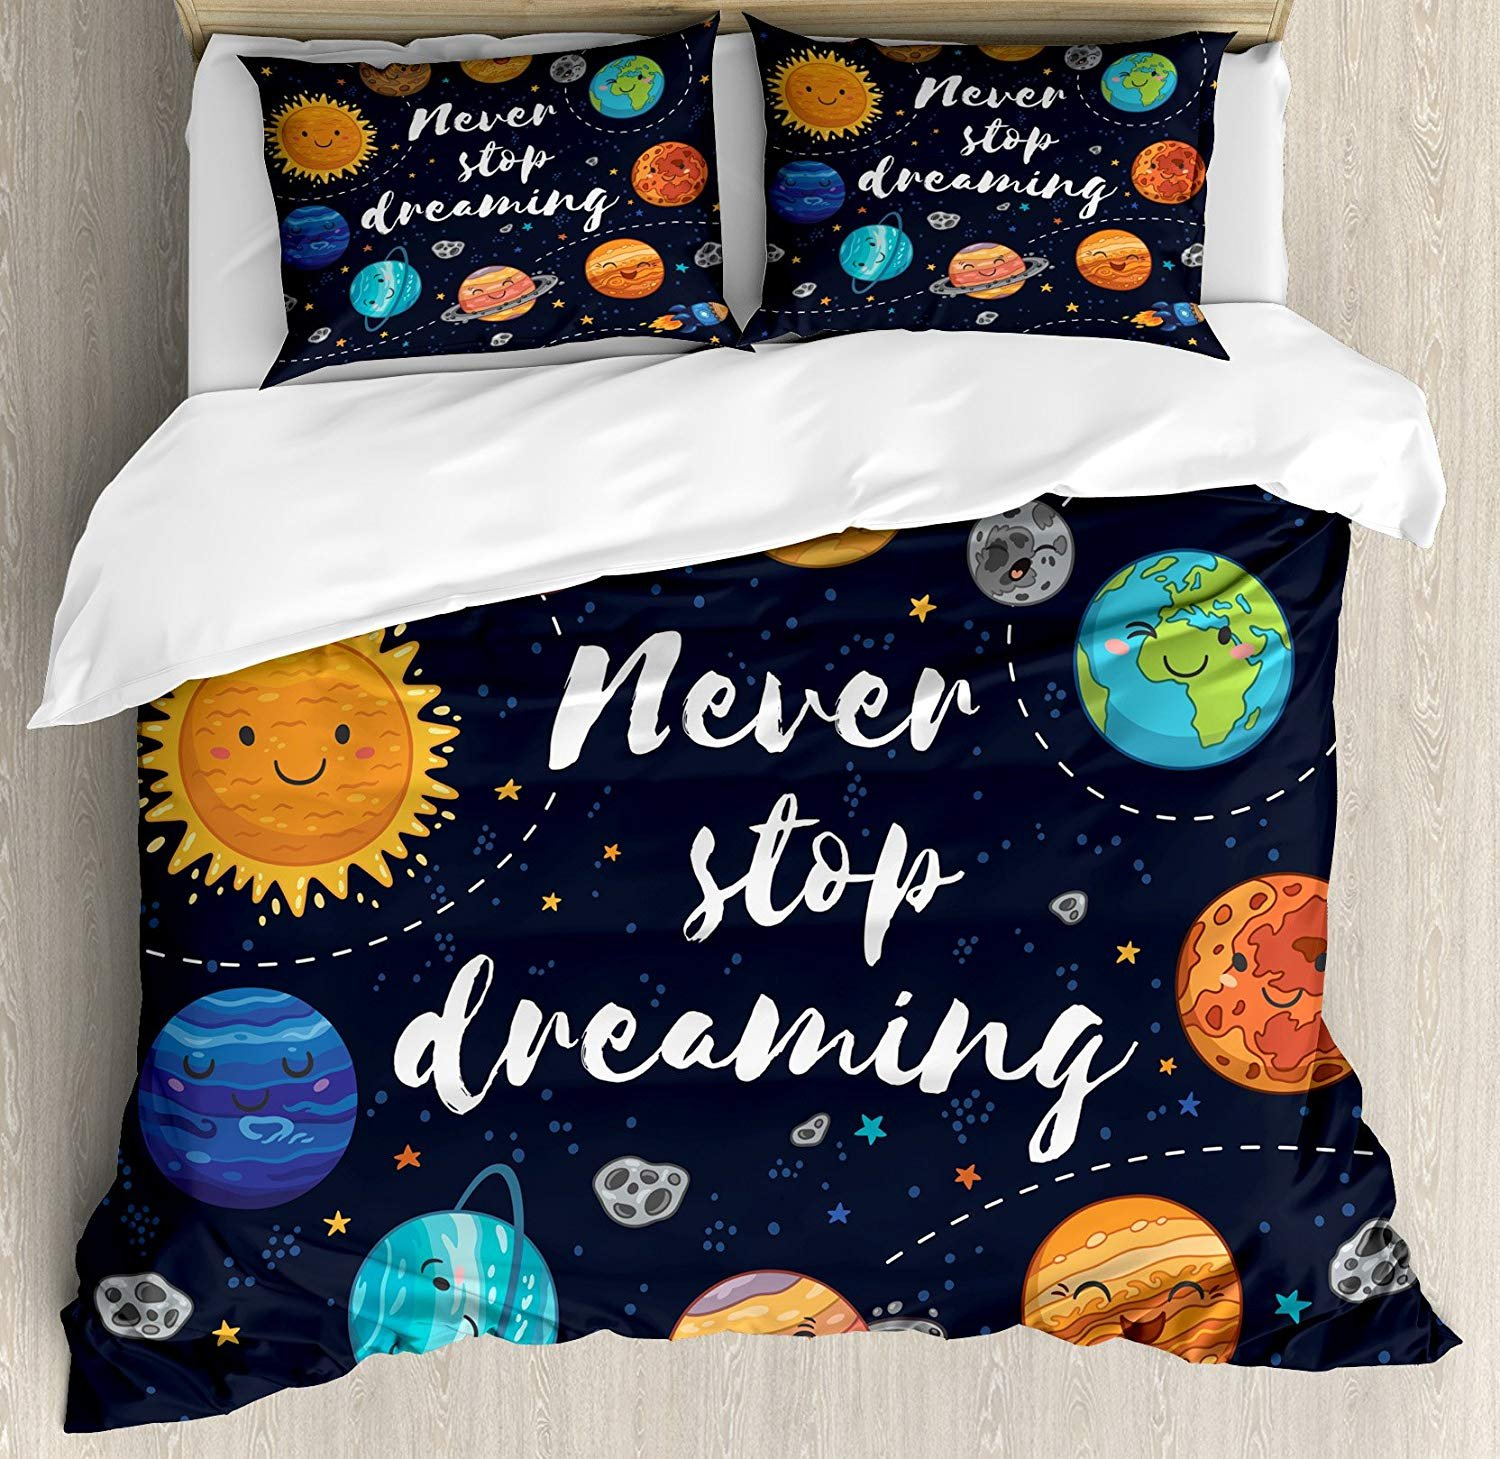 Anzona Twin Size Quote 3 PCS Duvet Cover Set, Outer Space Planets Star Cluster Solar System Moon Comets Sun Cosmos Illustration, Bedding Set Bedspread Children/Teens/Adults/Kids, Multi